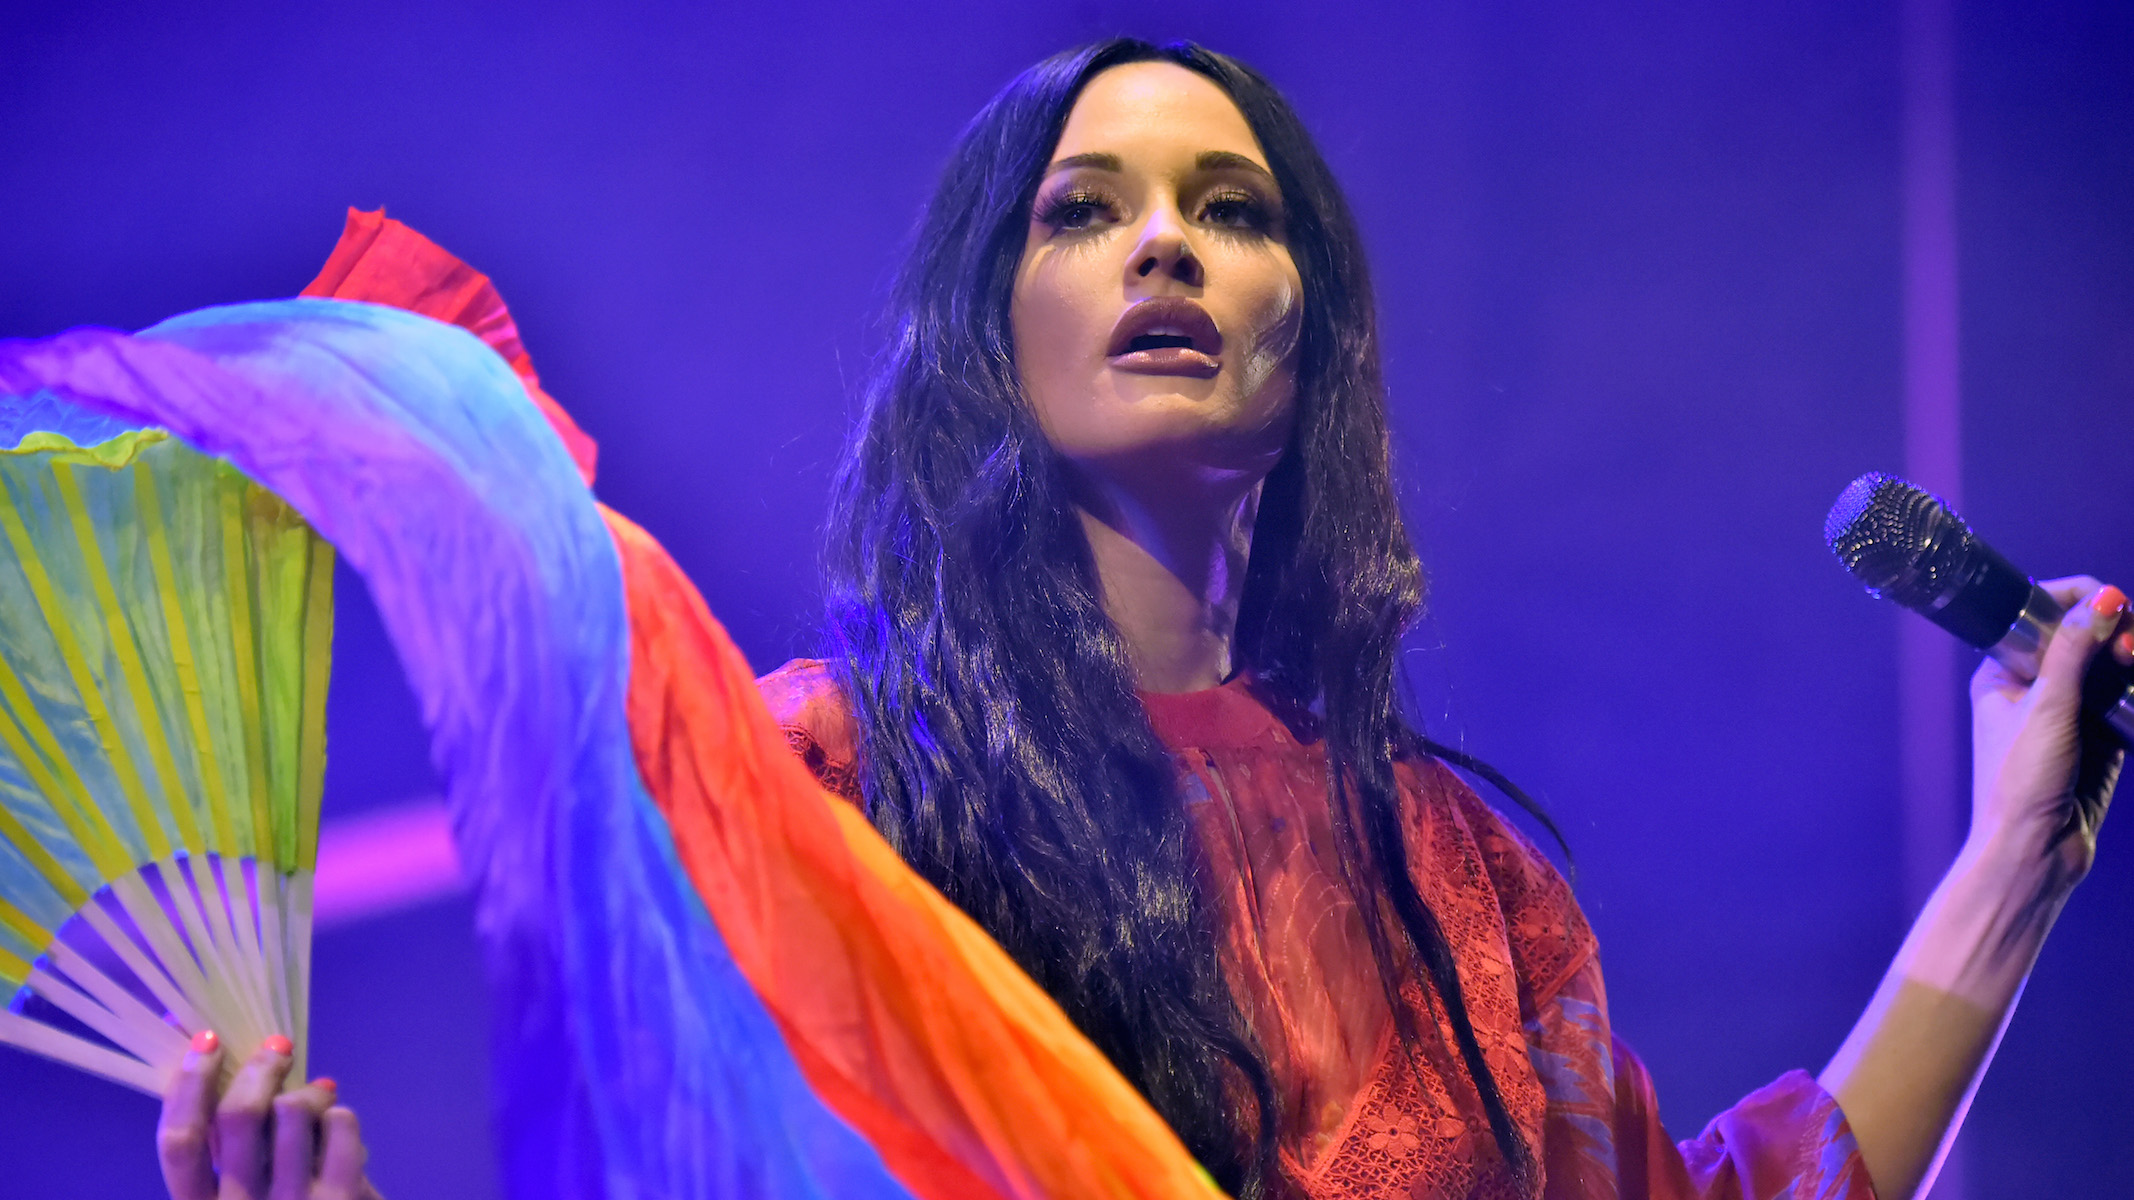 Bonnaroo 2019 Day 3 Recap: Kacey Musgraves, John Prine, The Lonely Island and More